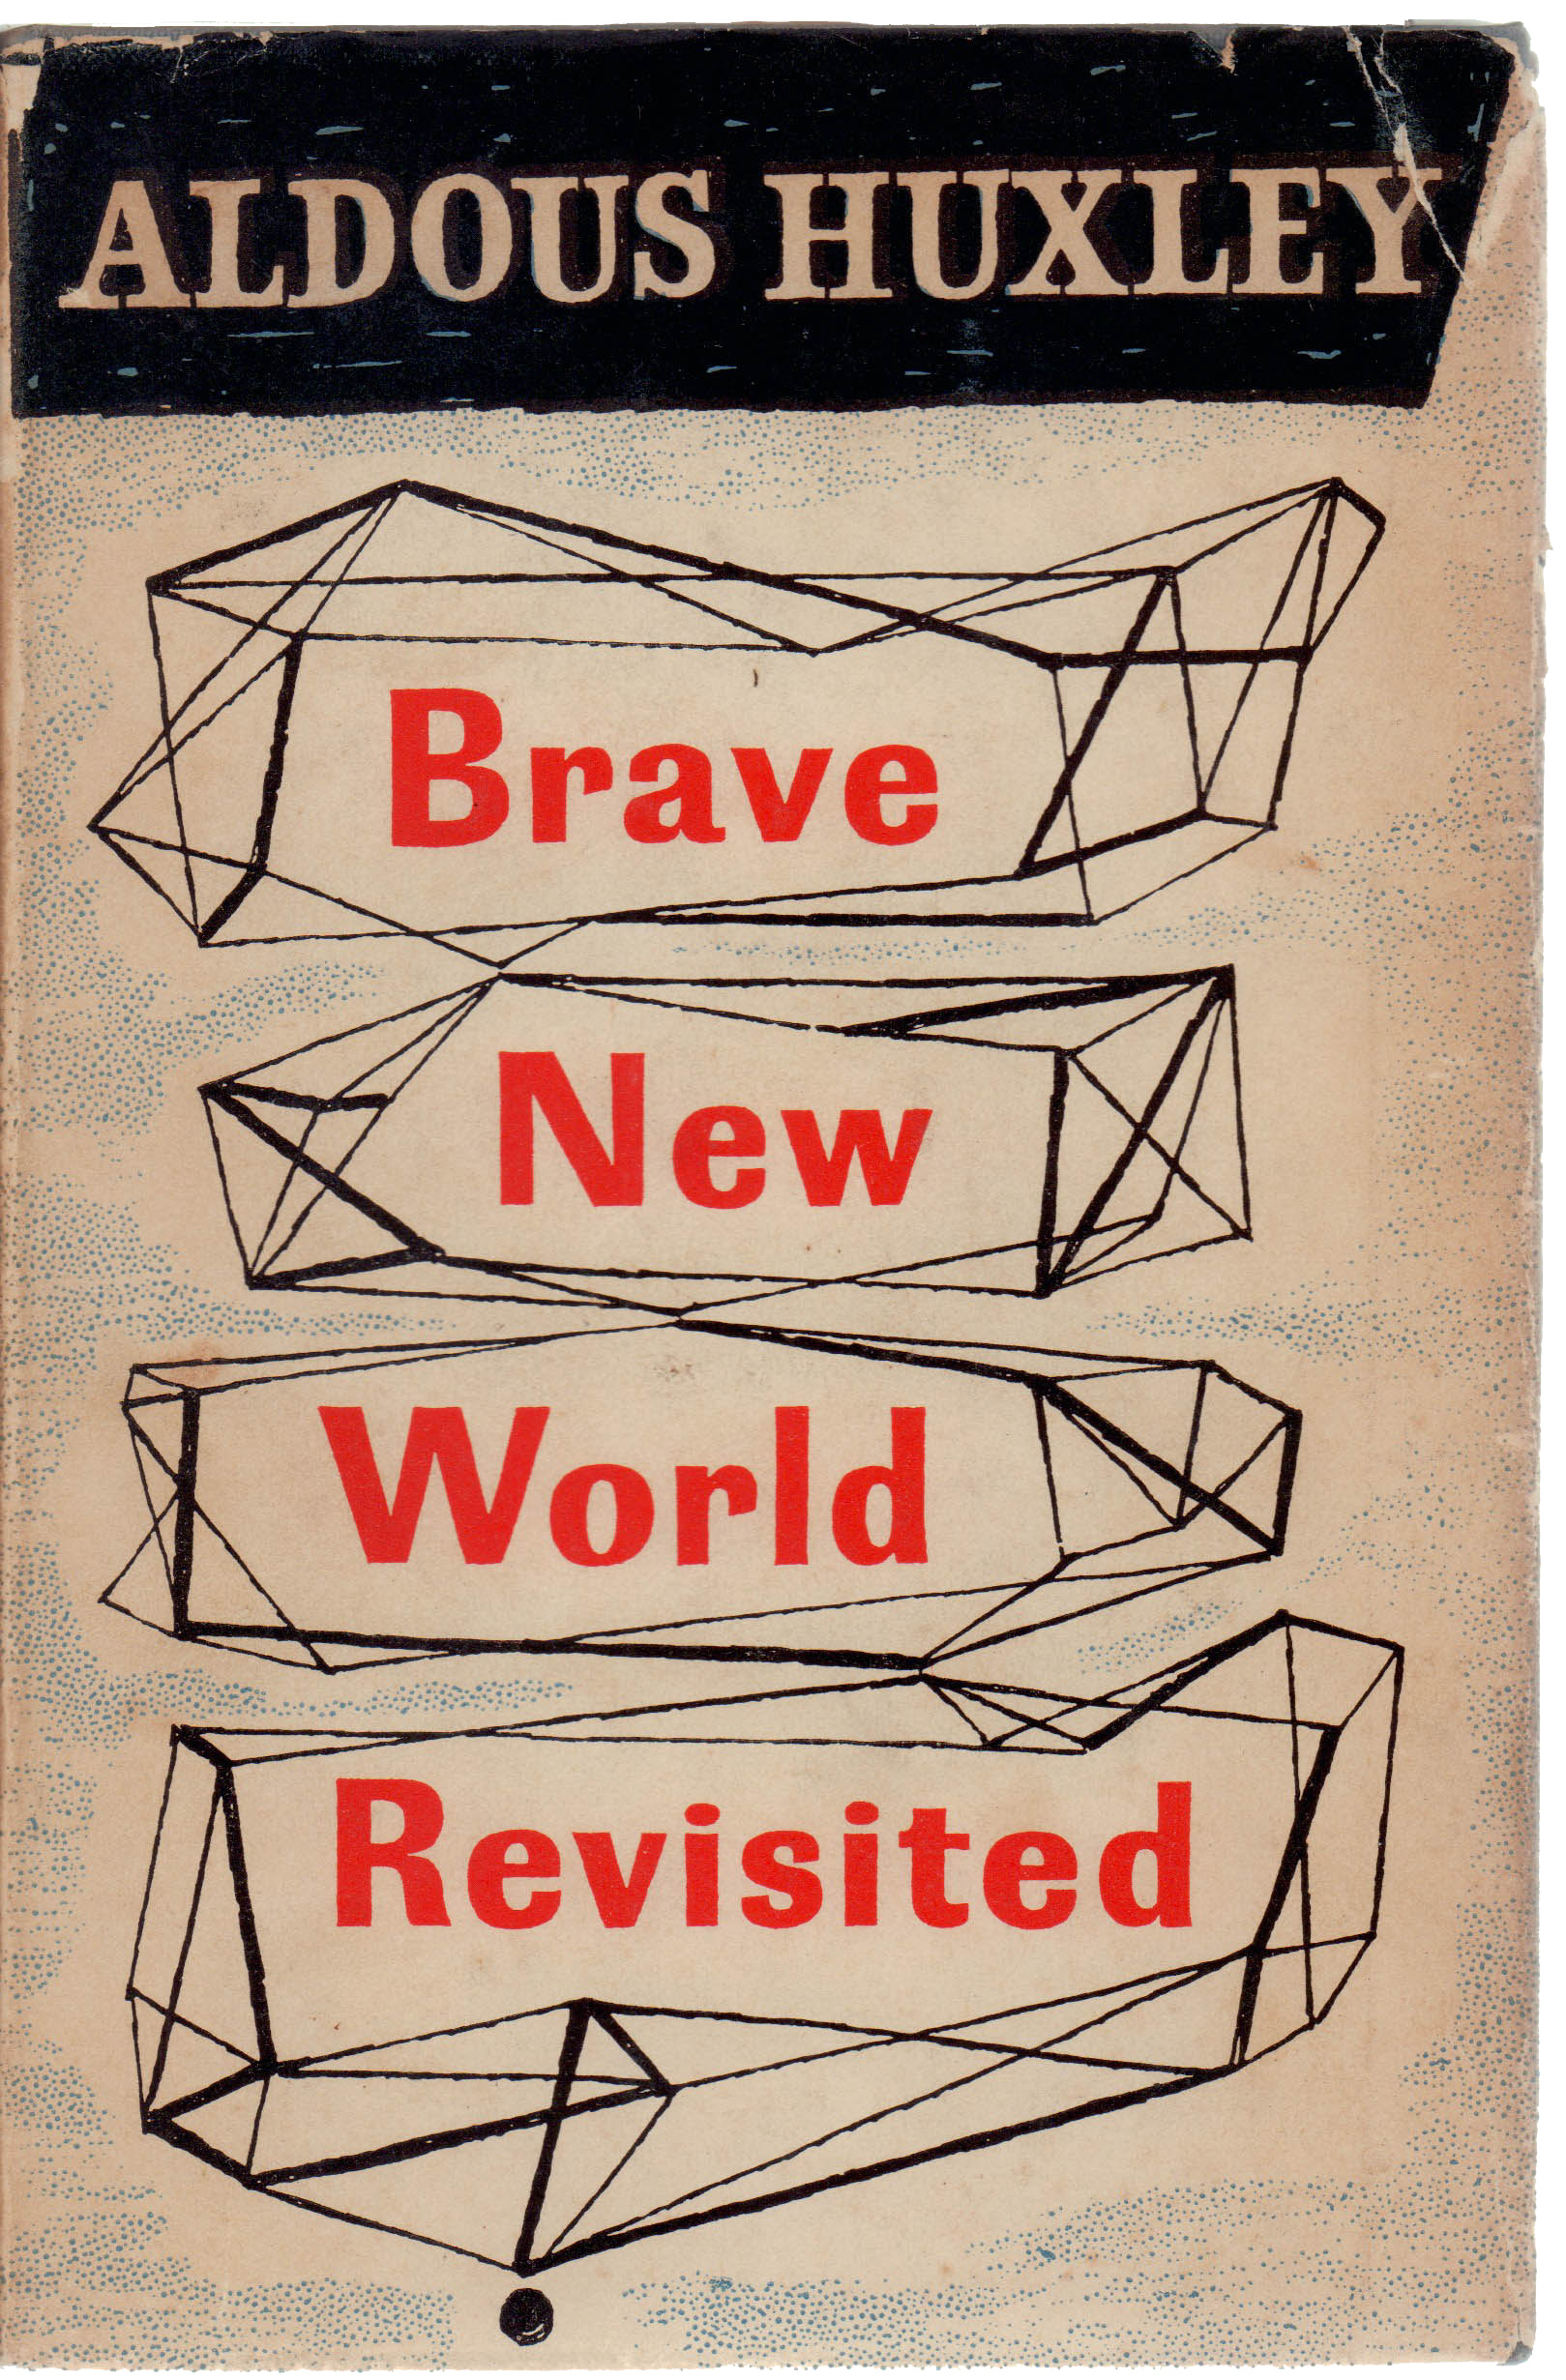 a brave new world by huxley Huxley's brave new world is a remarkable piece of writing which prophesies the futuristic world the concept of nature through the character of john the savage depicts volumes about the totalitarian state which the author portrays beautifully.